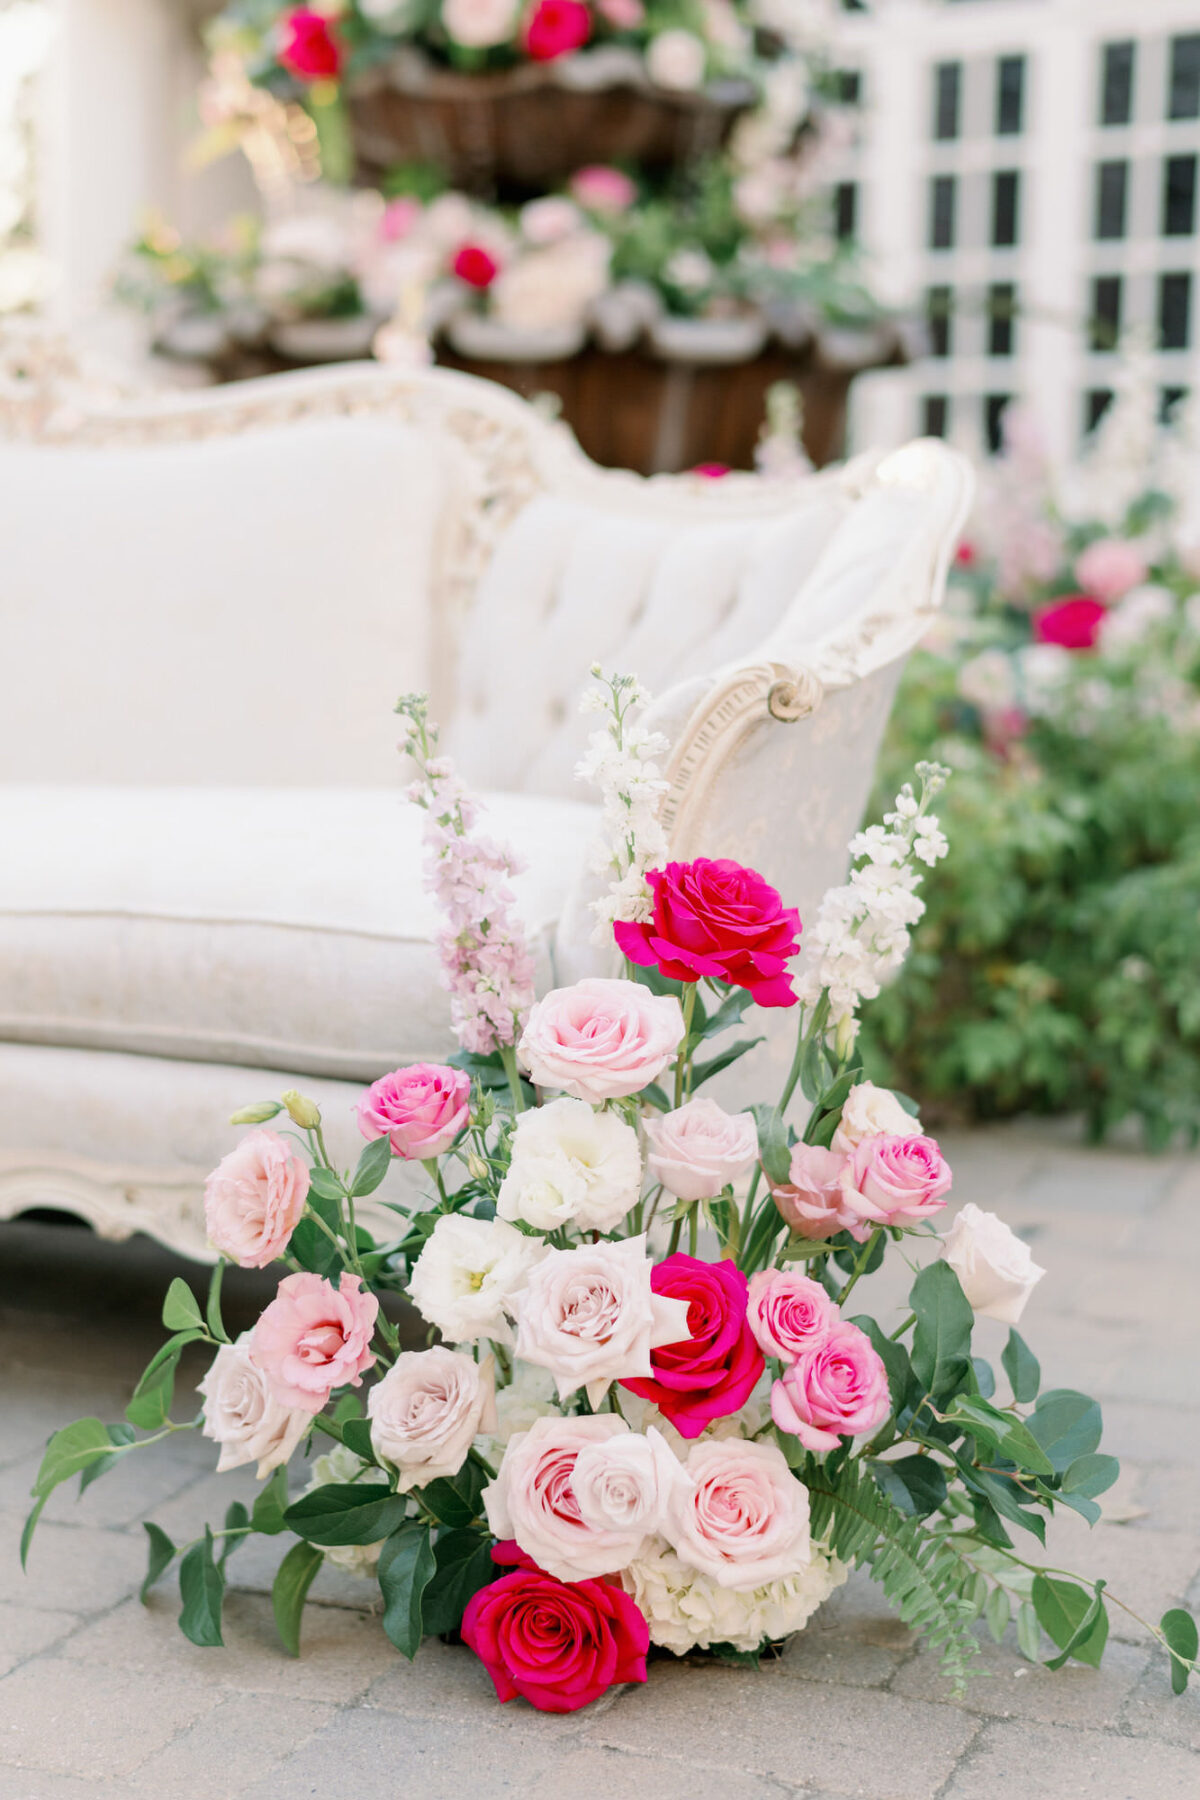 Outdoor wedding floral decor - Peony Park Photography